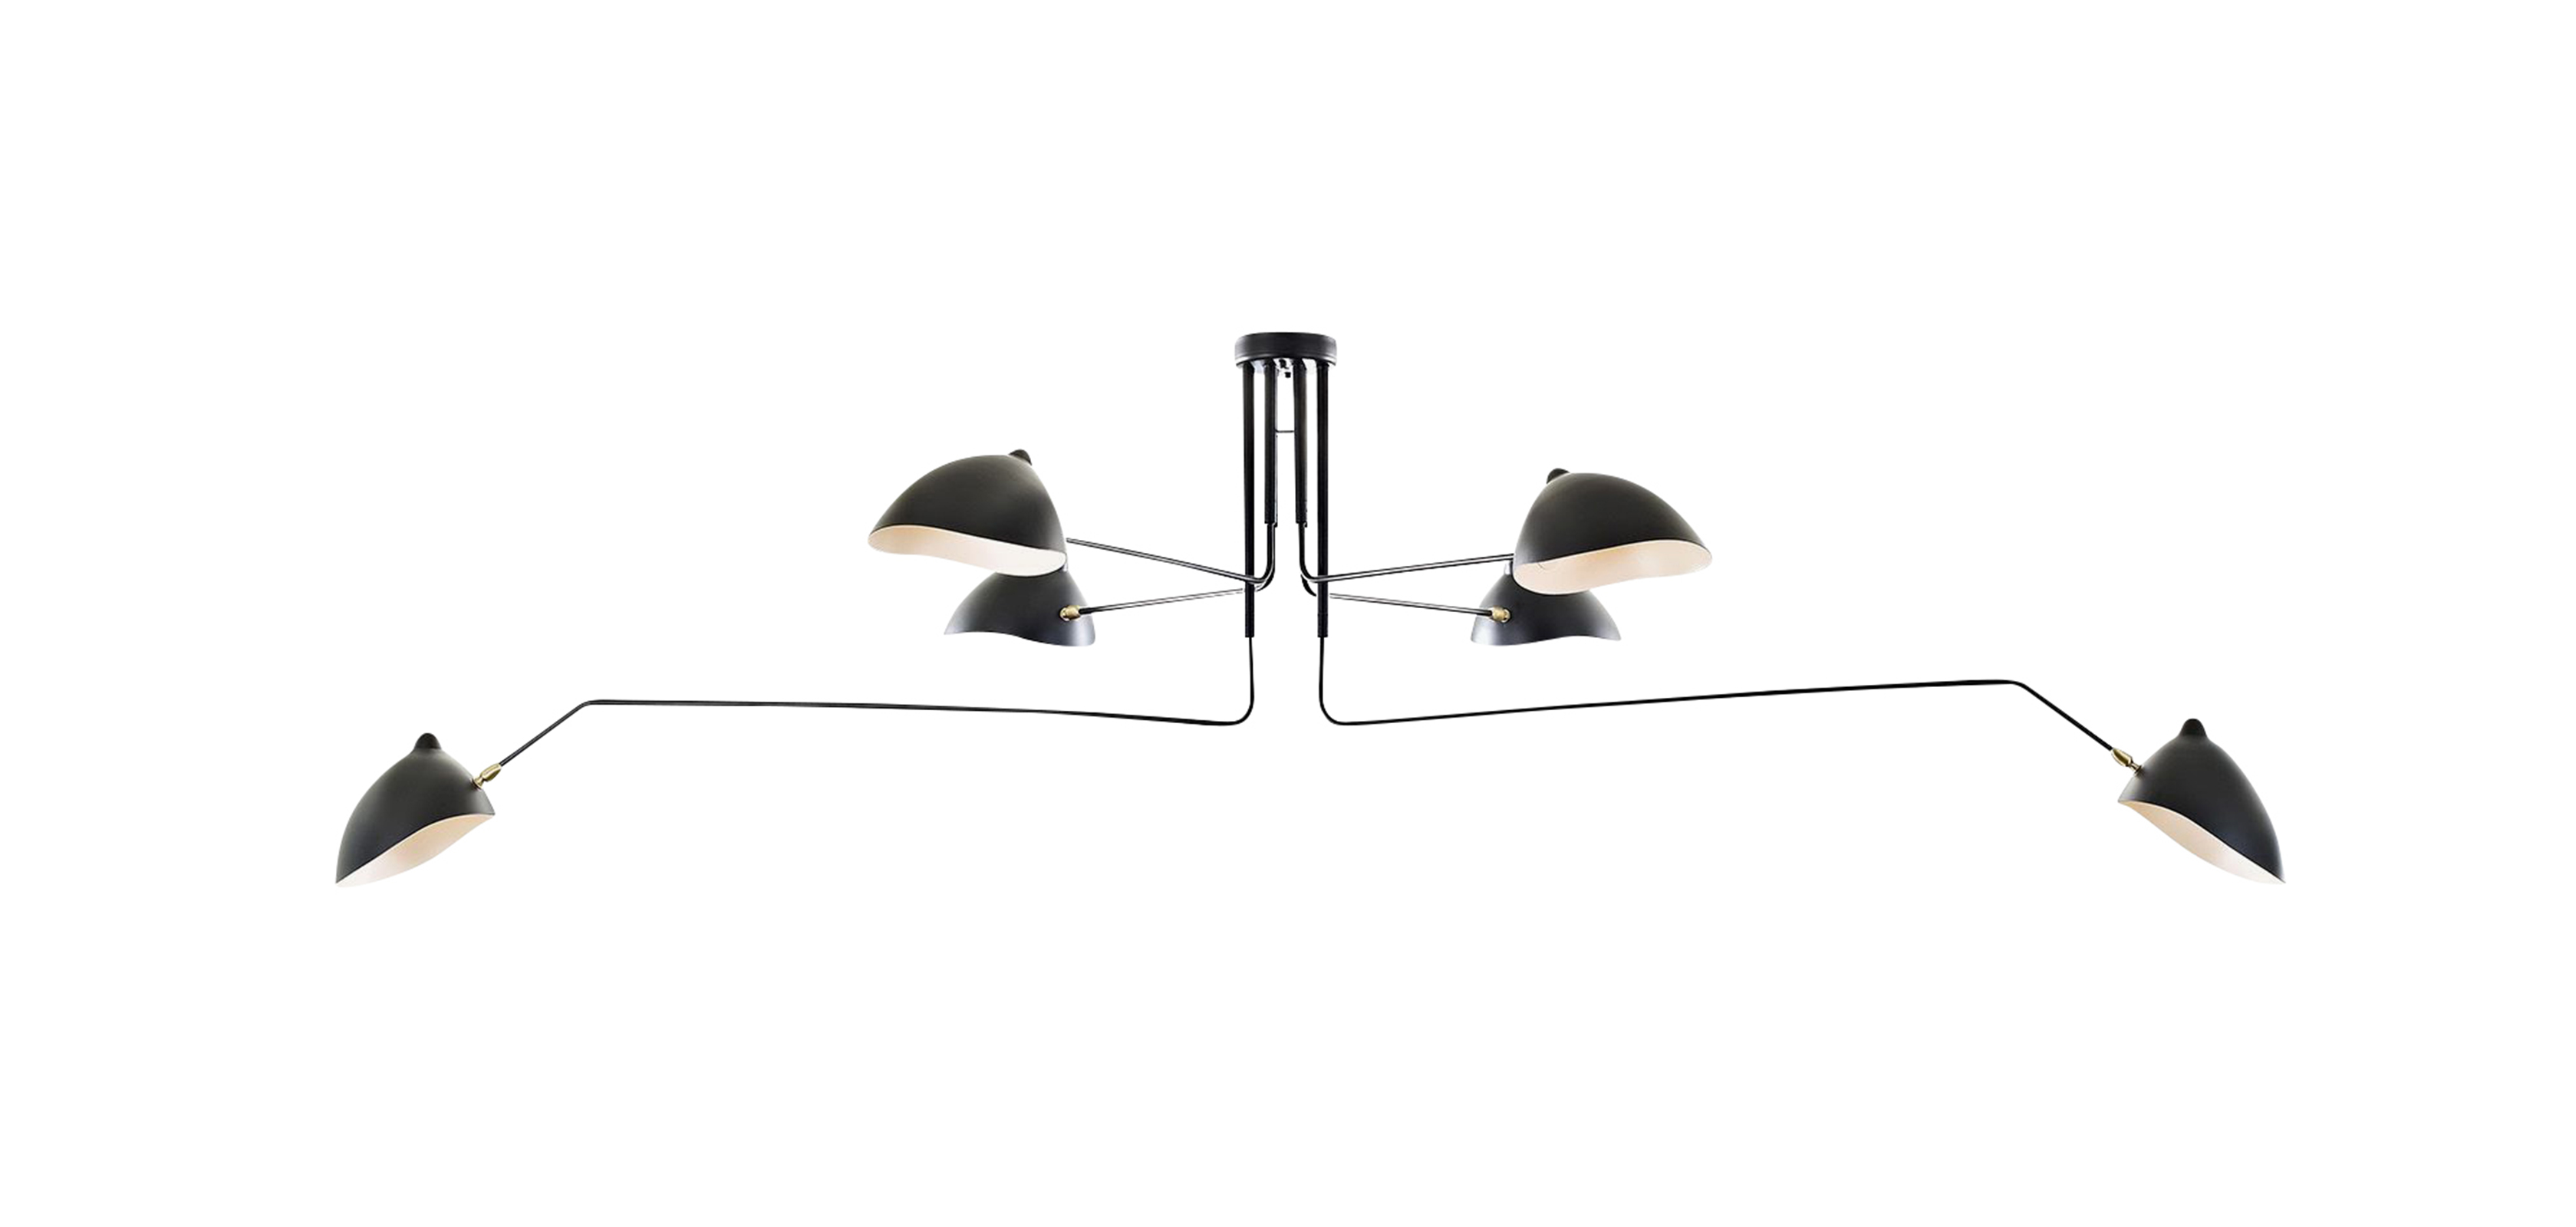 Design Serge Mouille mcl r6 pendant lamp serge mouille style suspensions lampe en suspension style